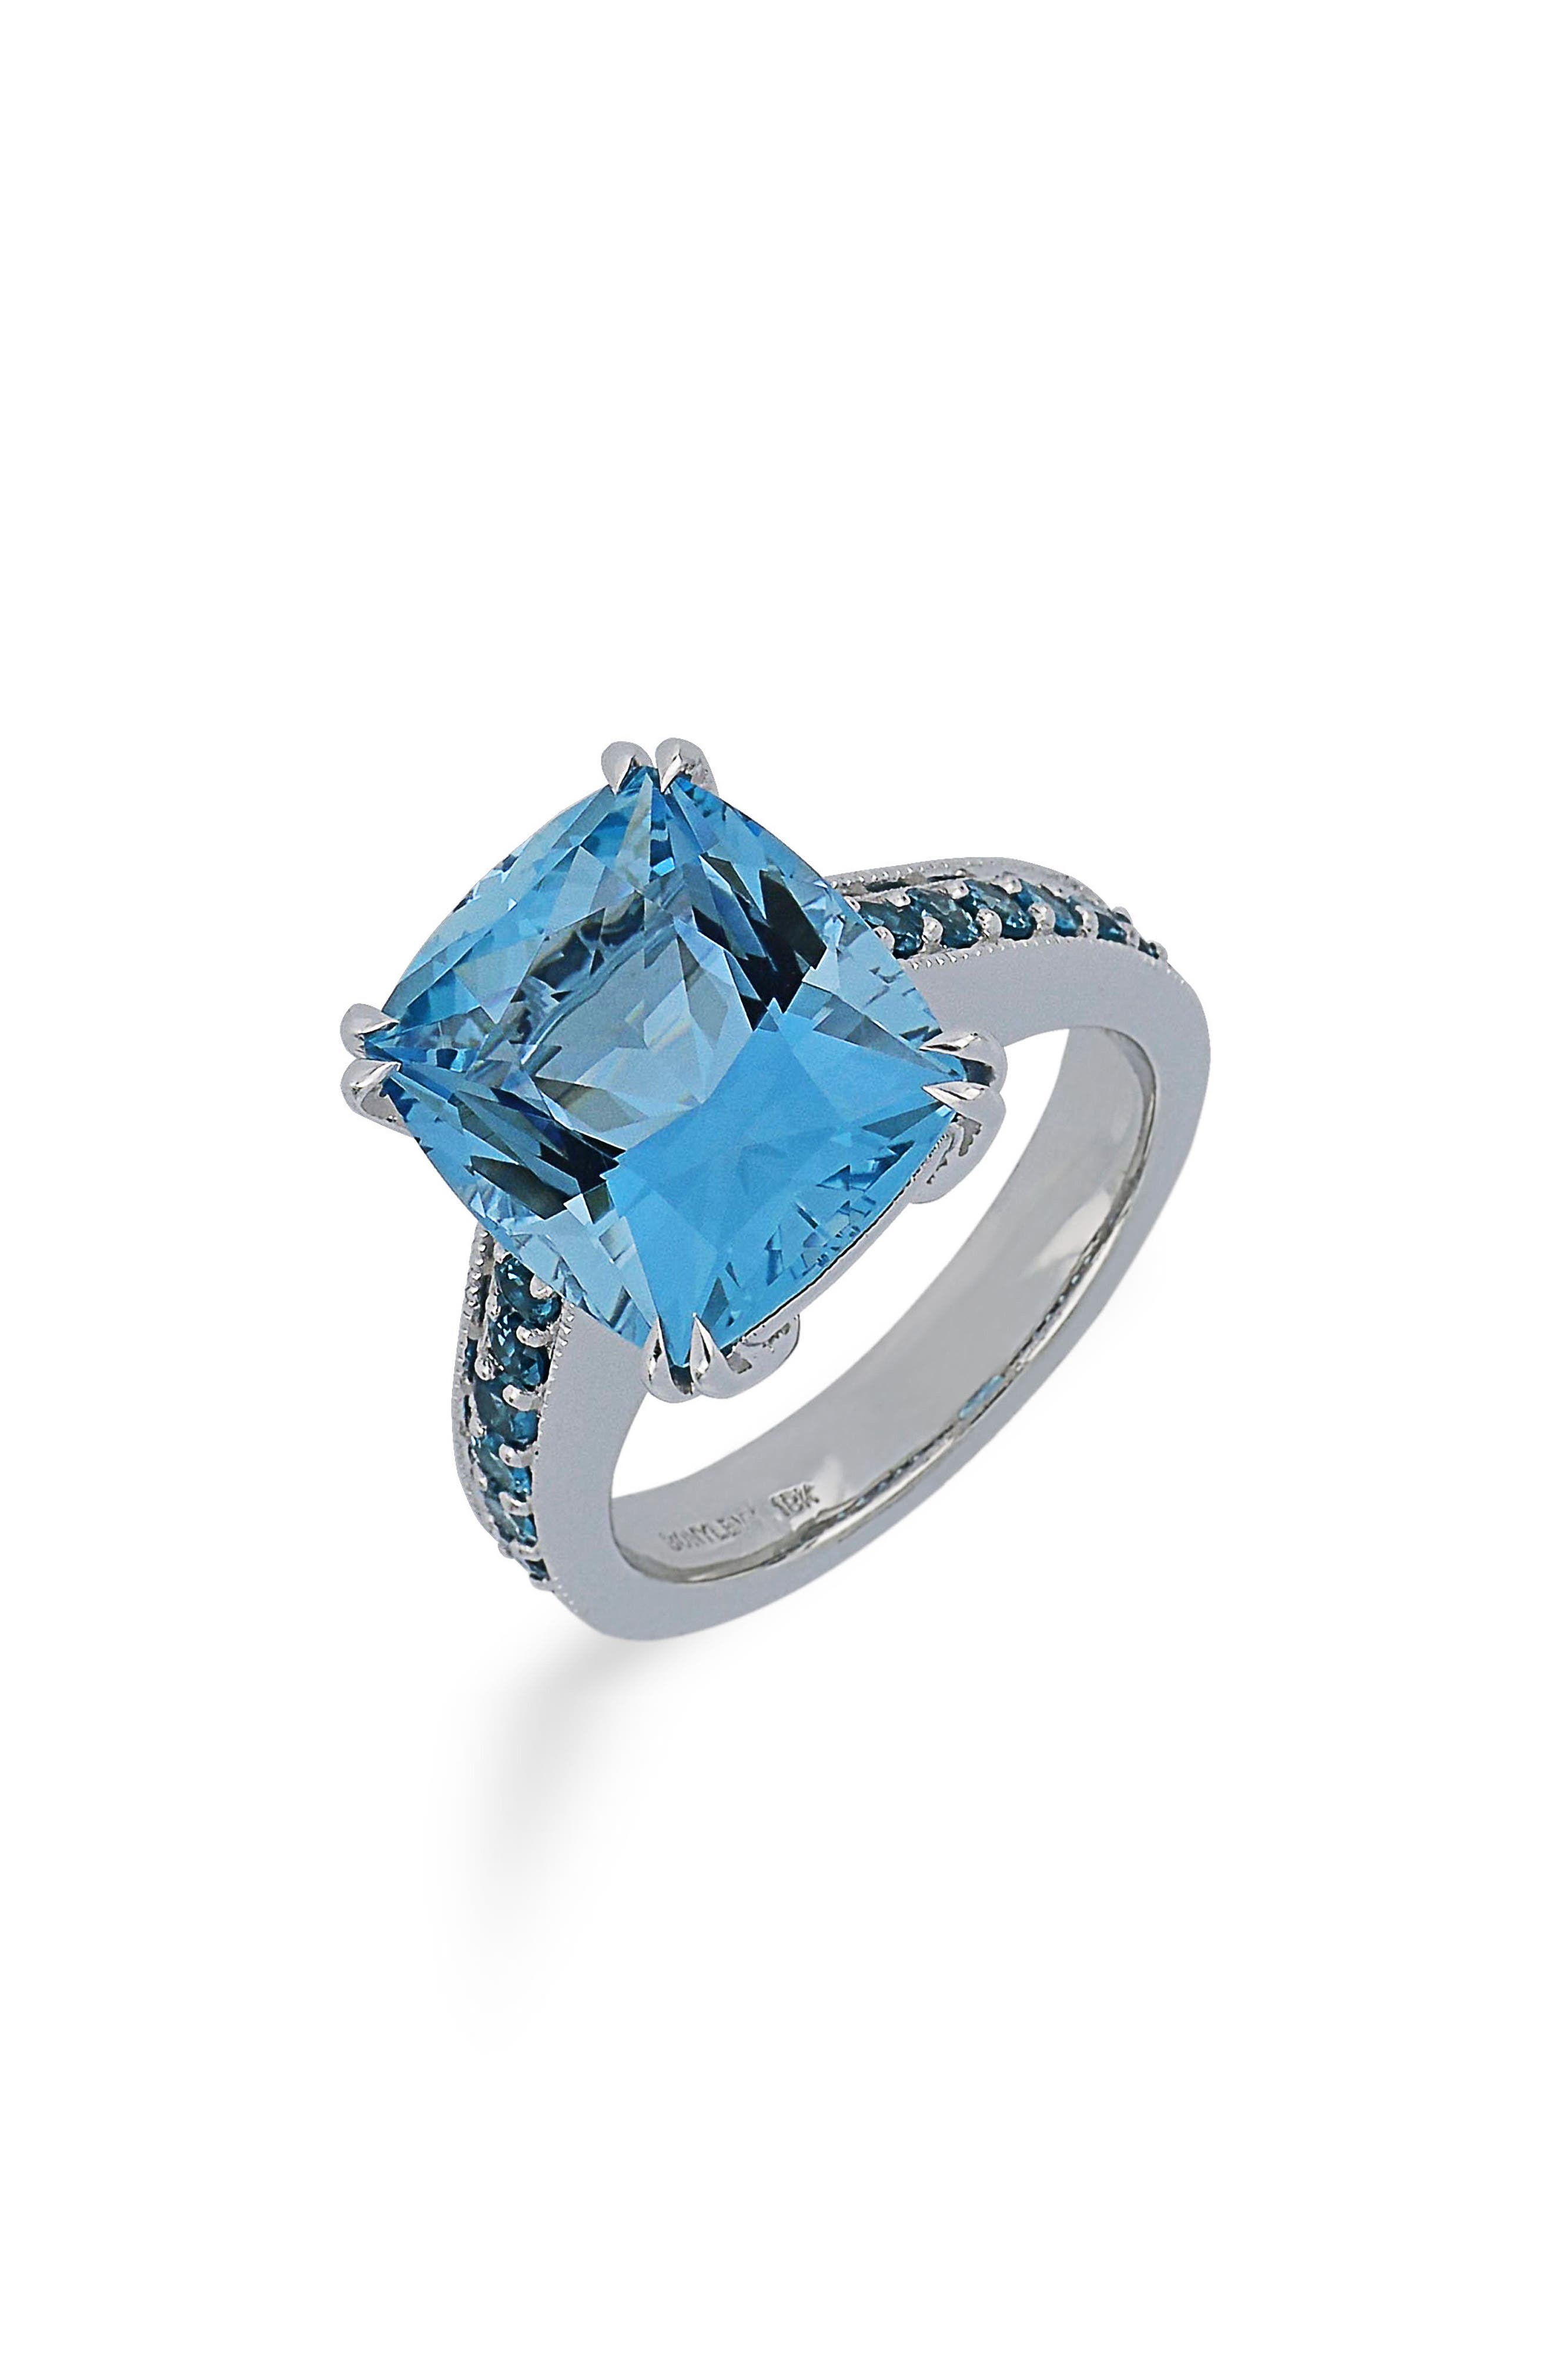 Alternate Image 1 Selected - Bony Levy Aquamarine & Blue Topaz Ring (Nordstrom Exclusive)